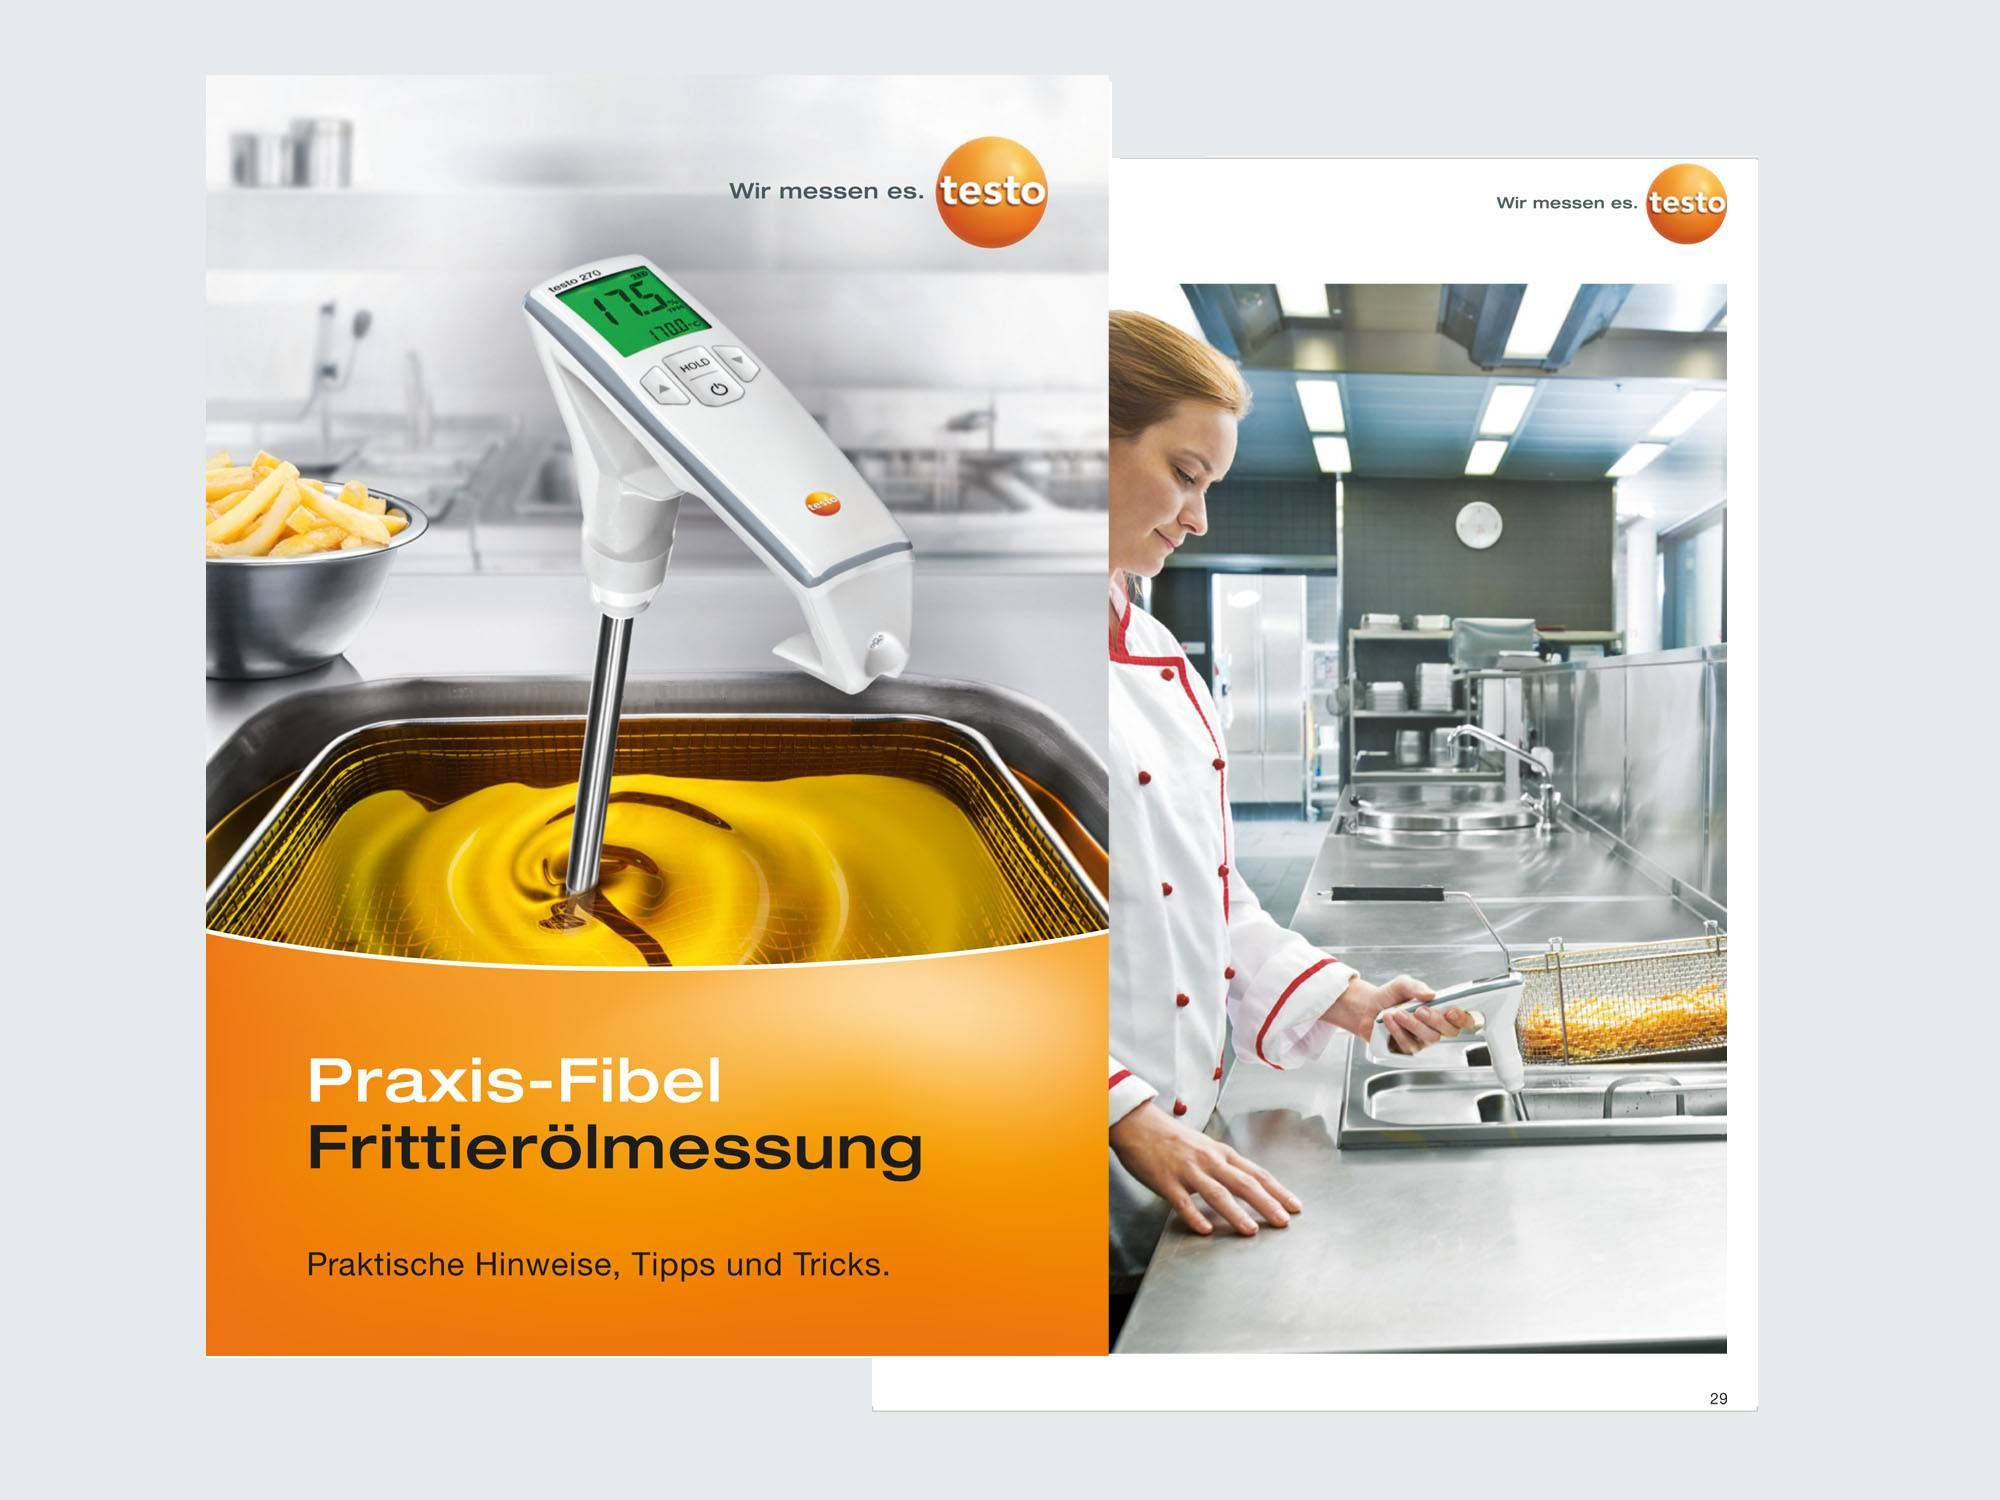 frittieroelmessung-praxis-fibel-vorschau-download.jpg